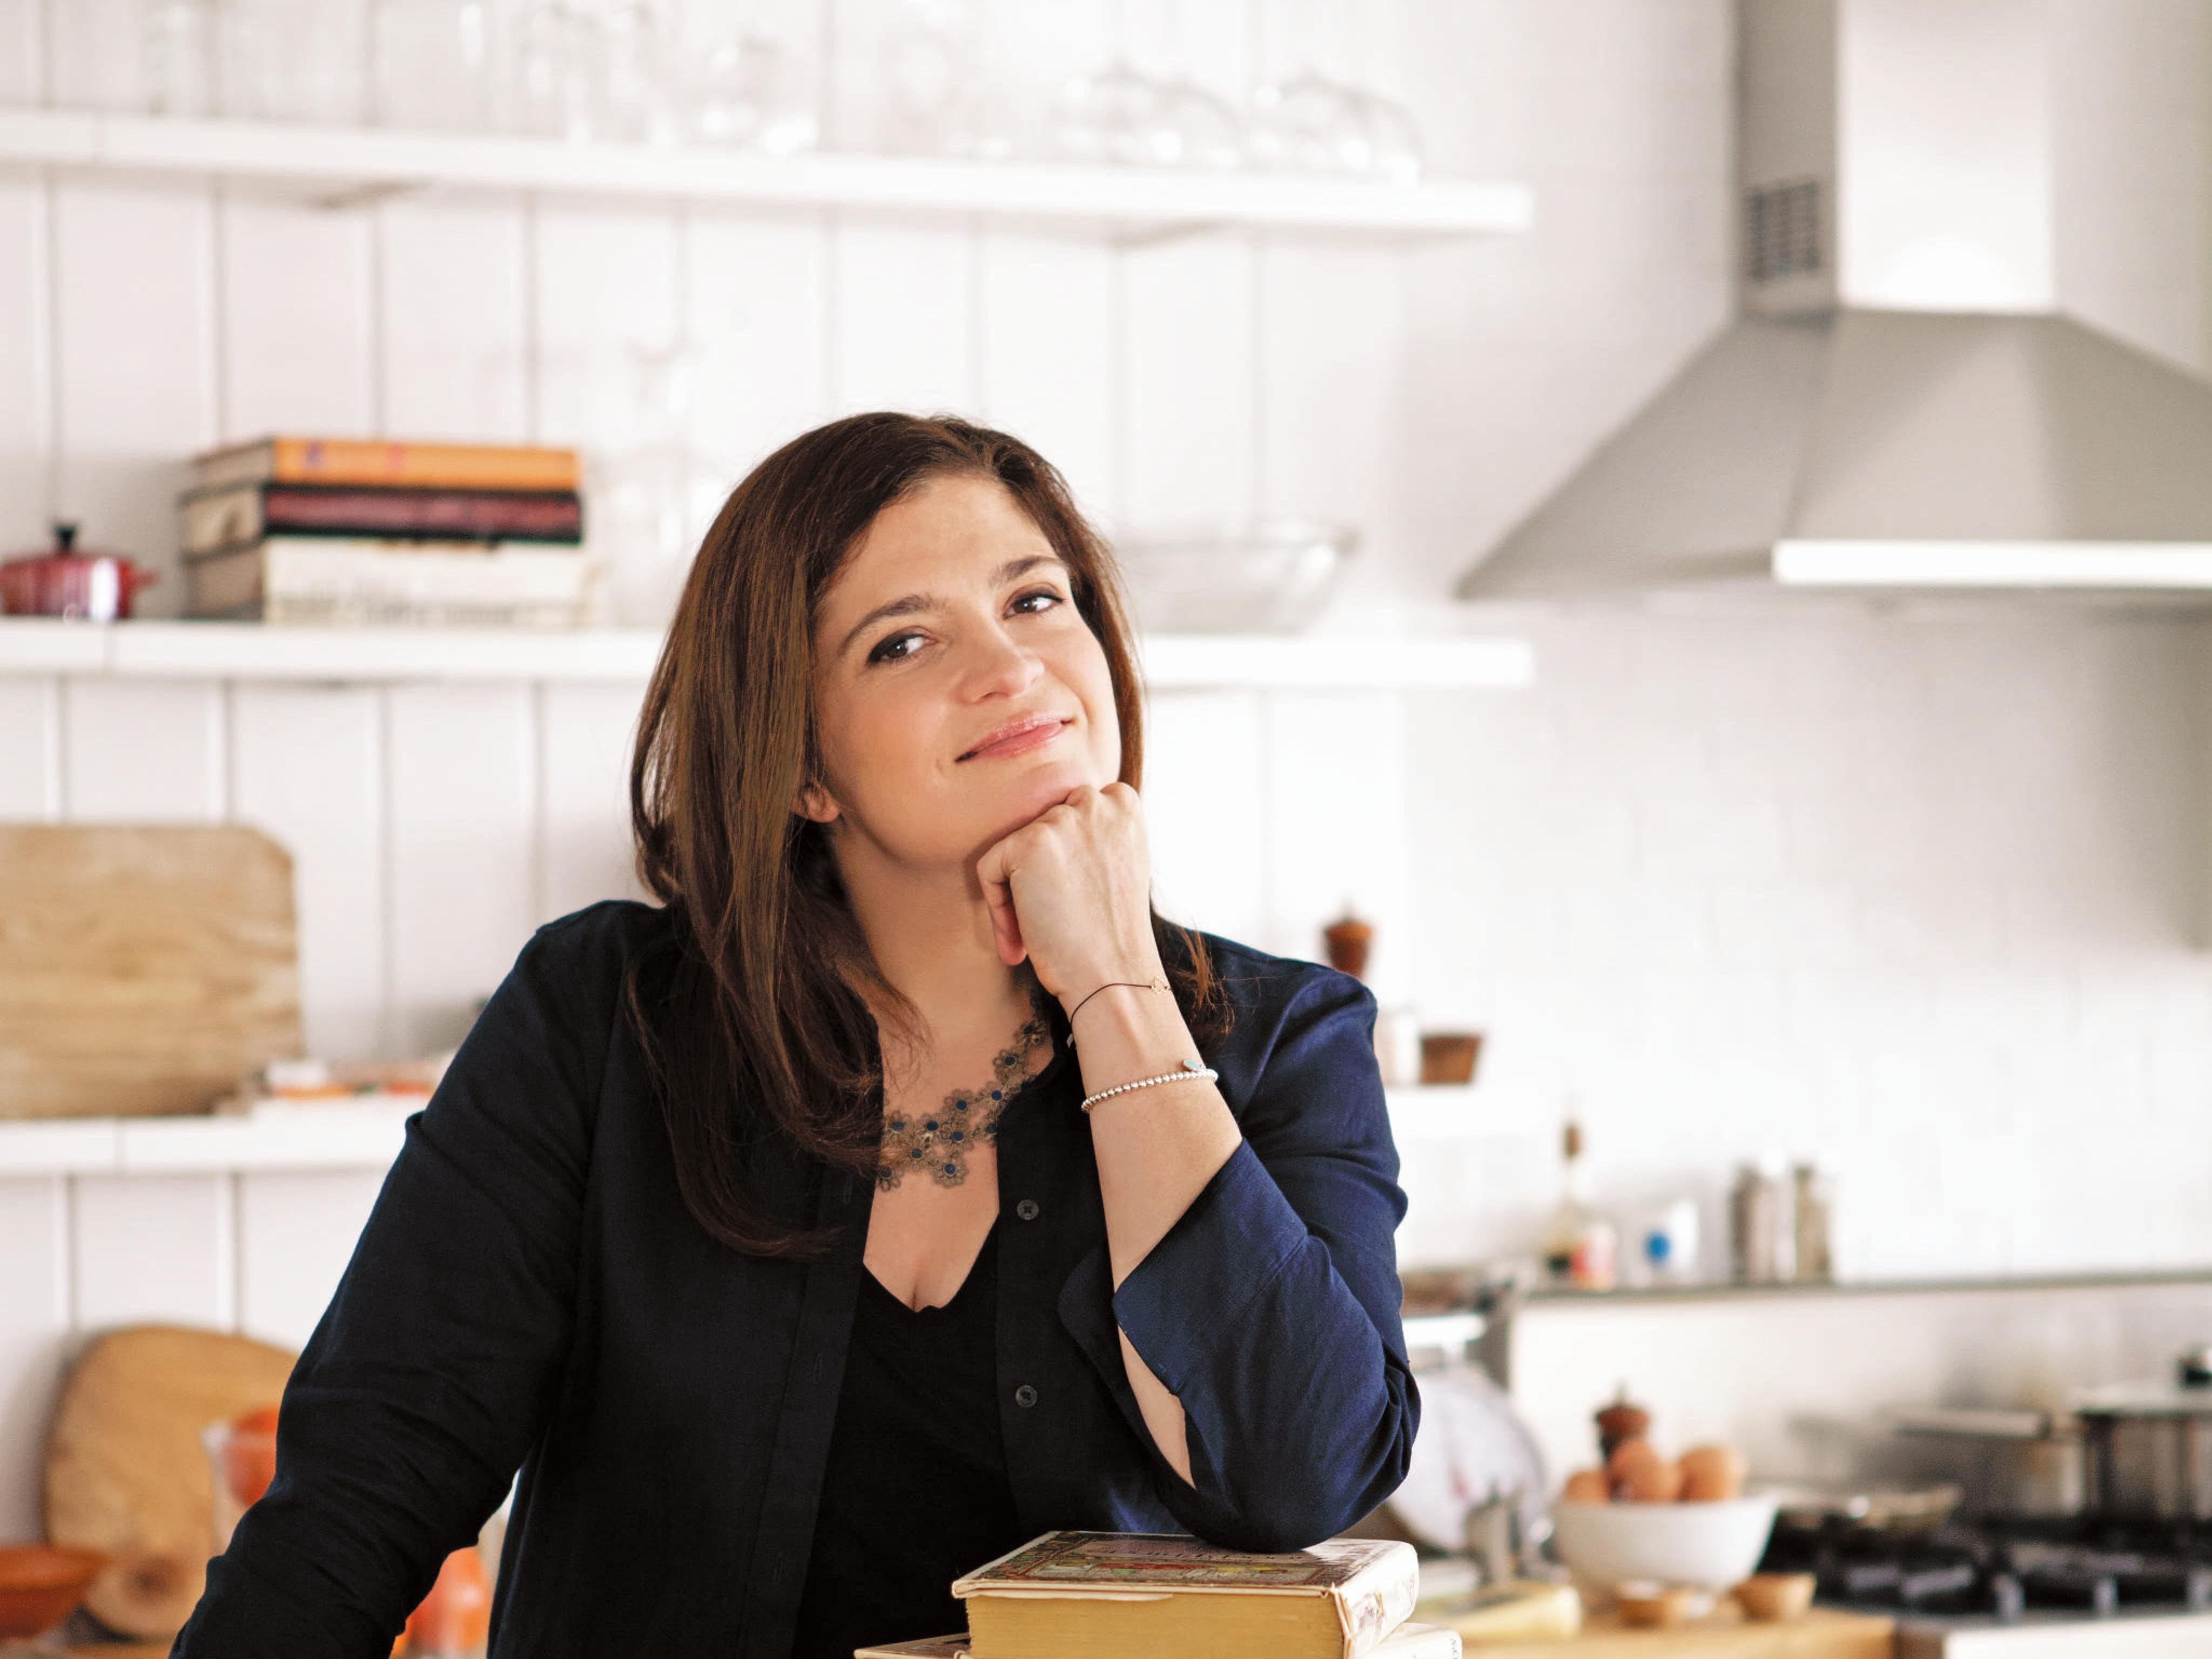 The Food Network's Chopped star Alex Guarnaschelli is a special guest on the USA TODAY Wine & Food Experience 2019 Tour.